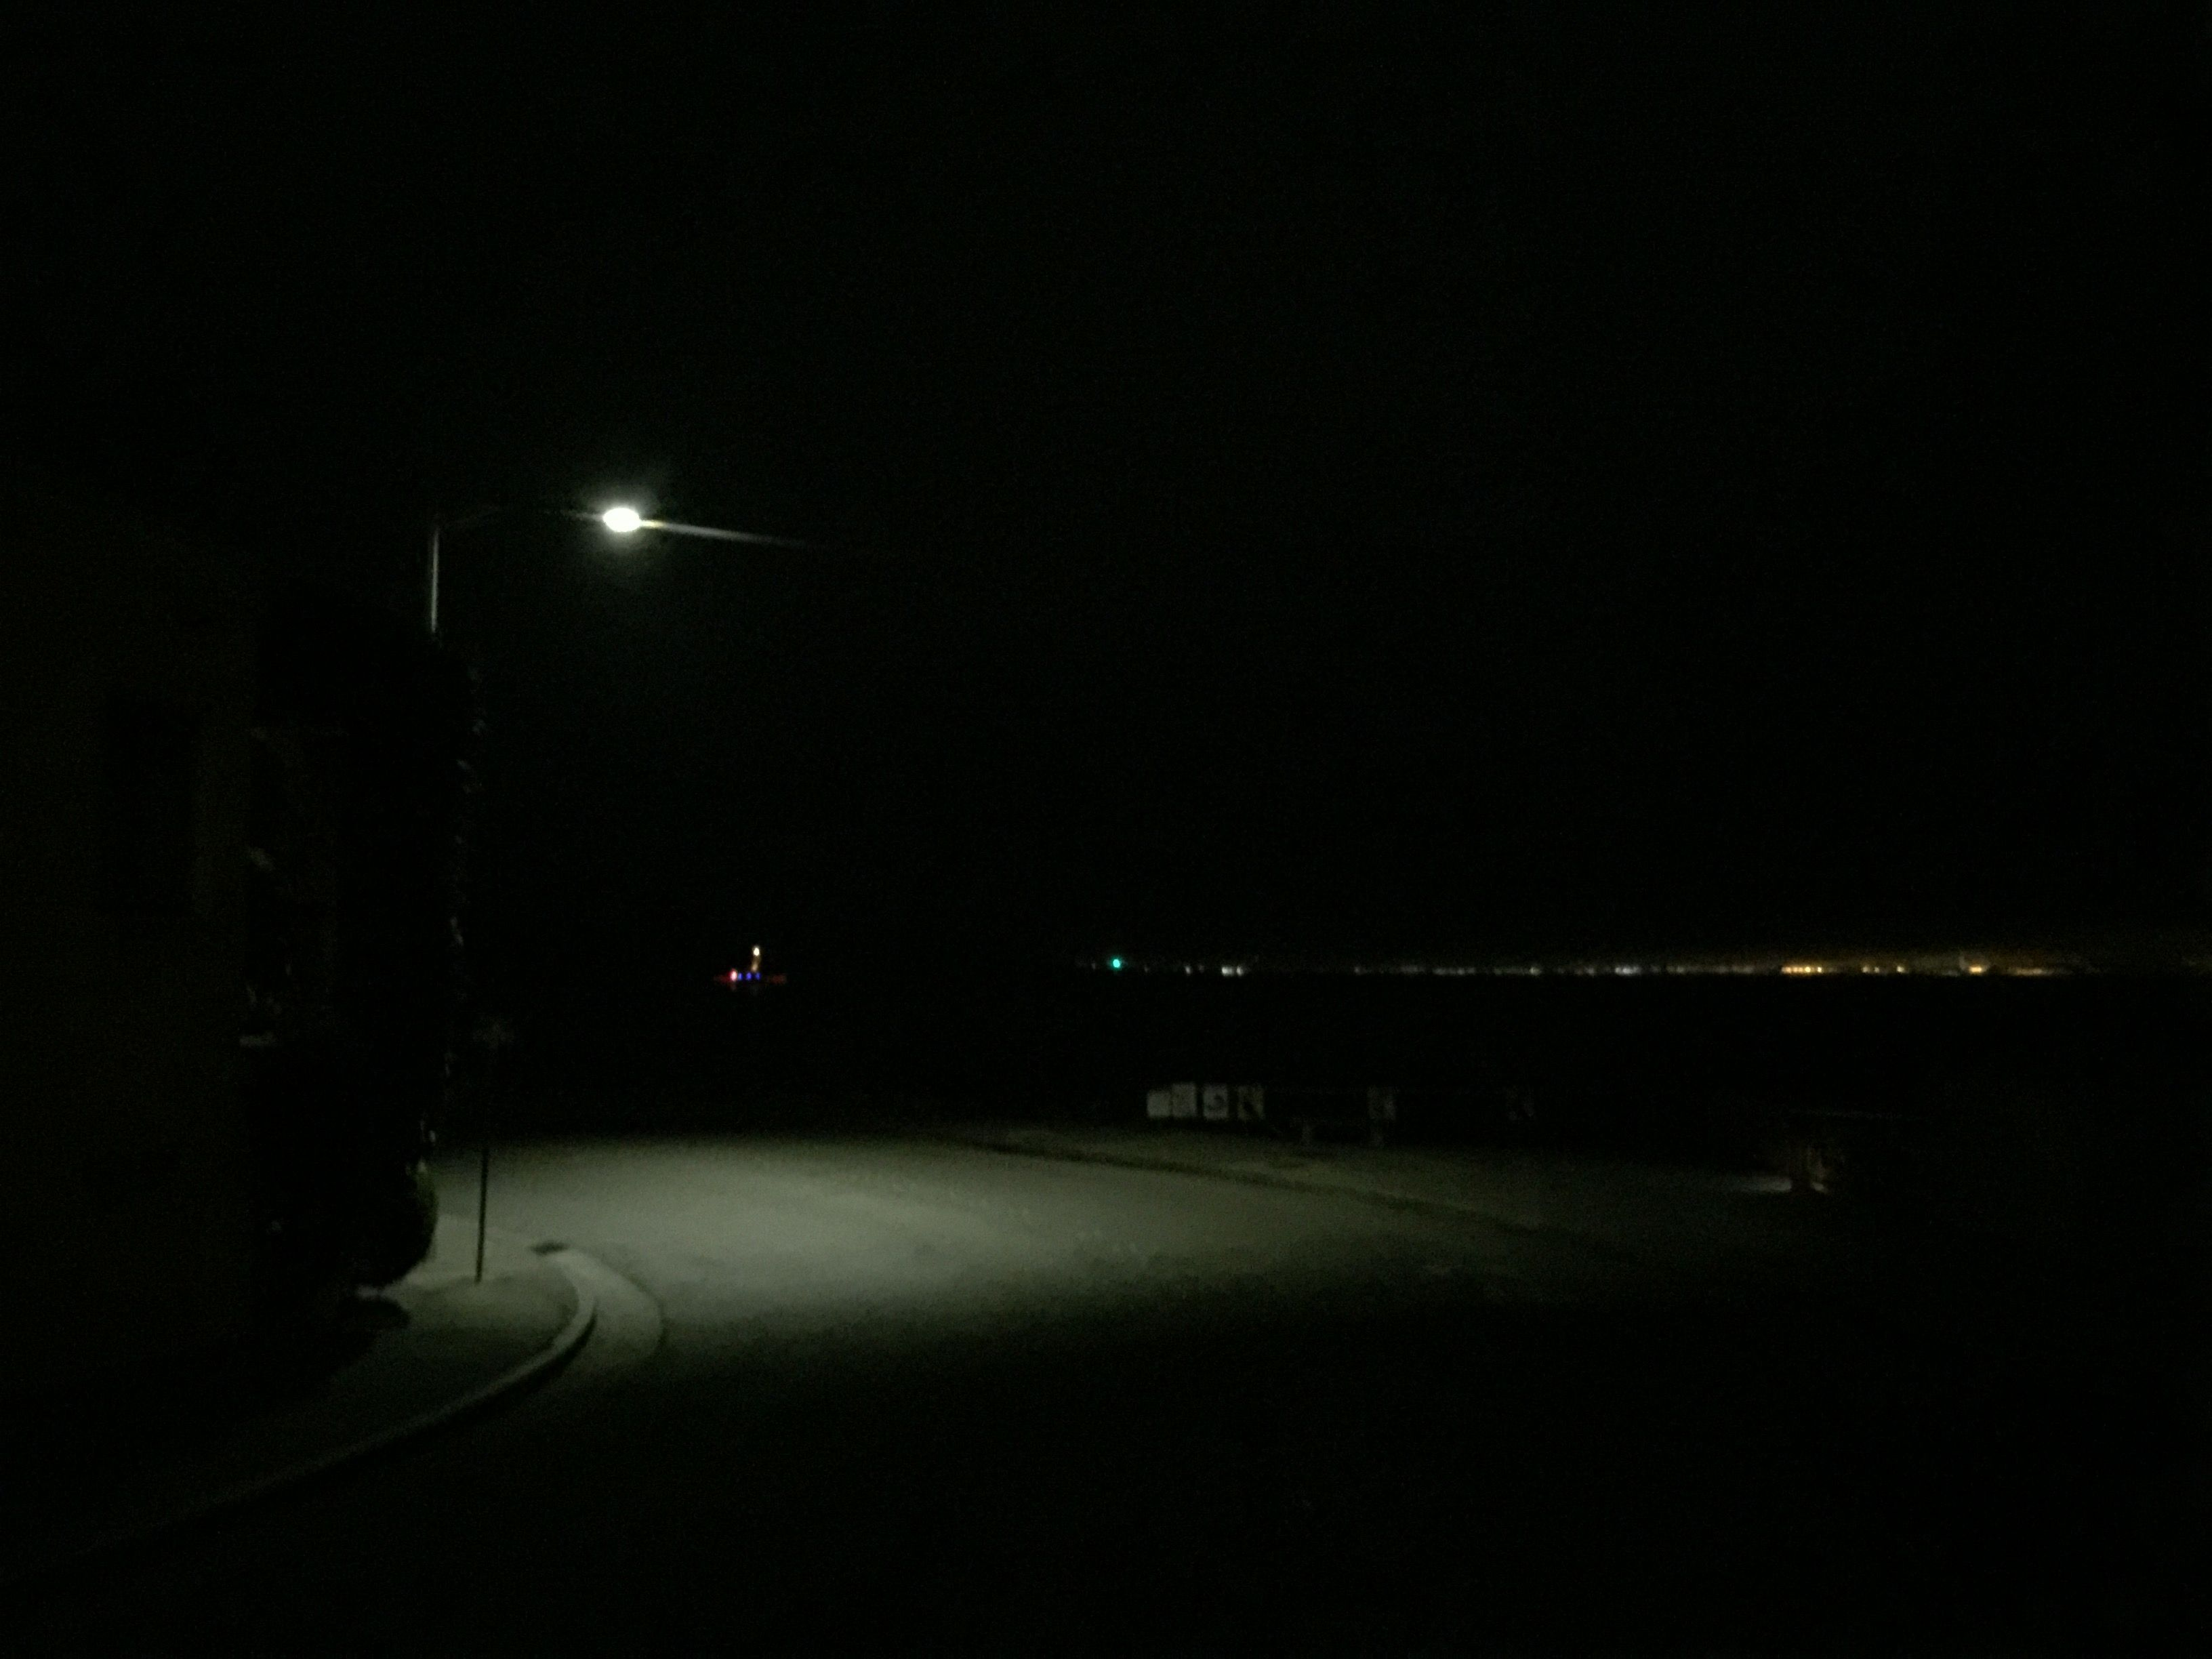 Lonely light lonely night night photography natural